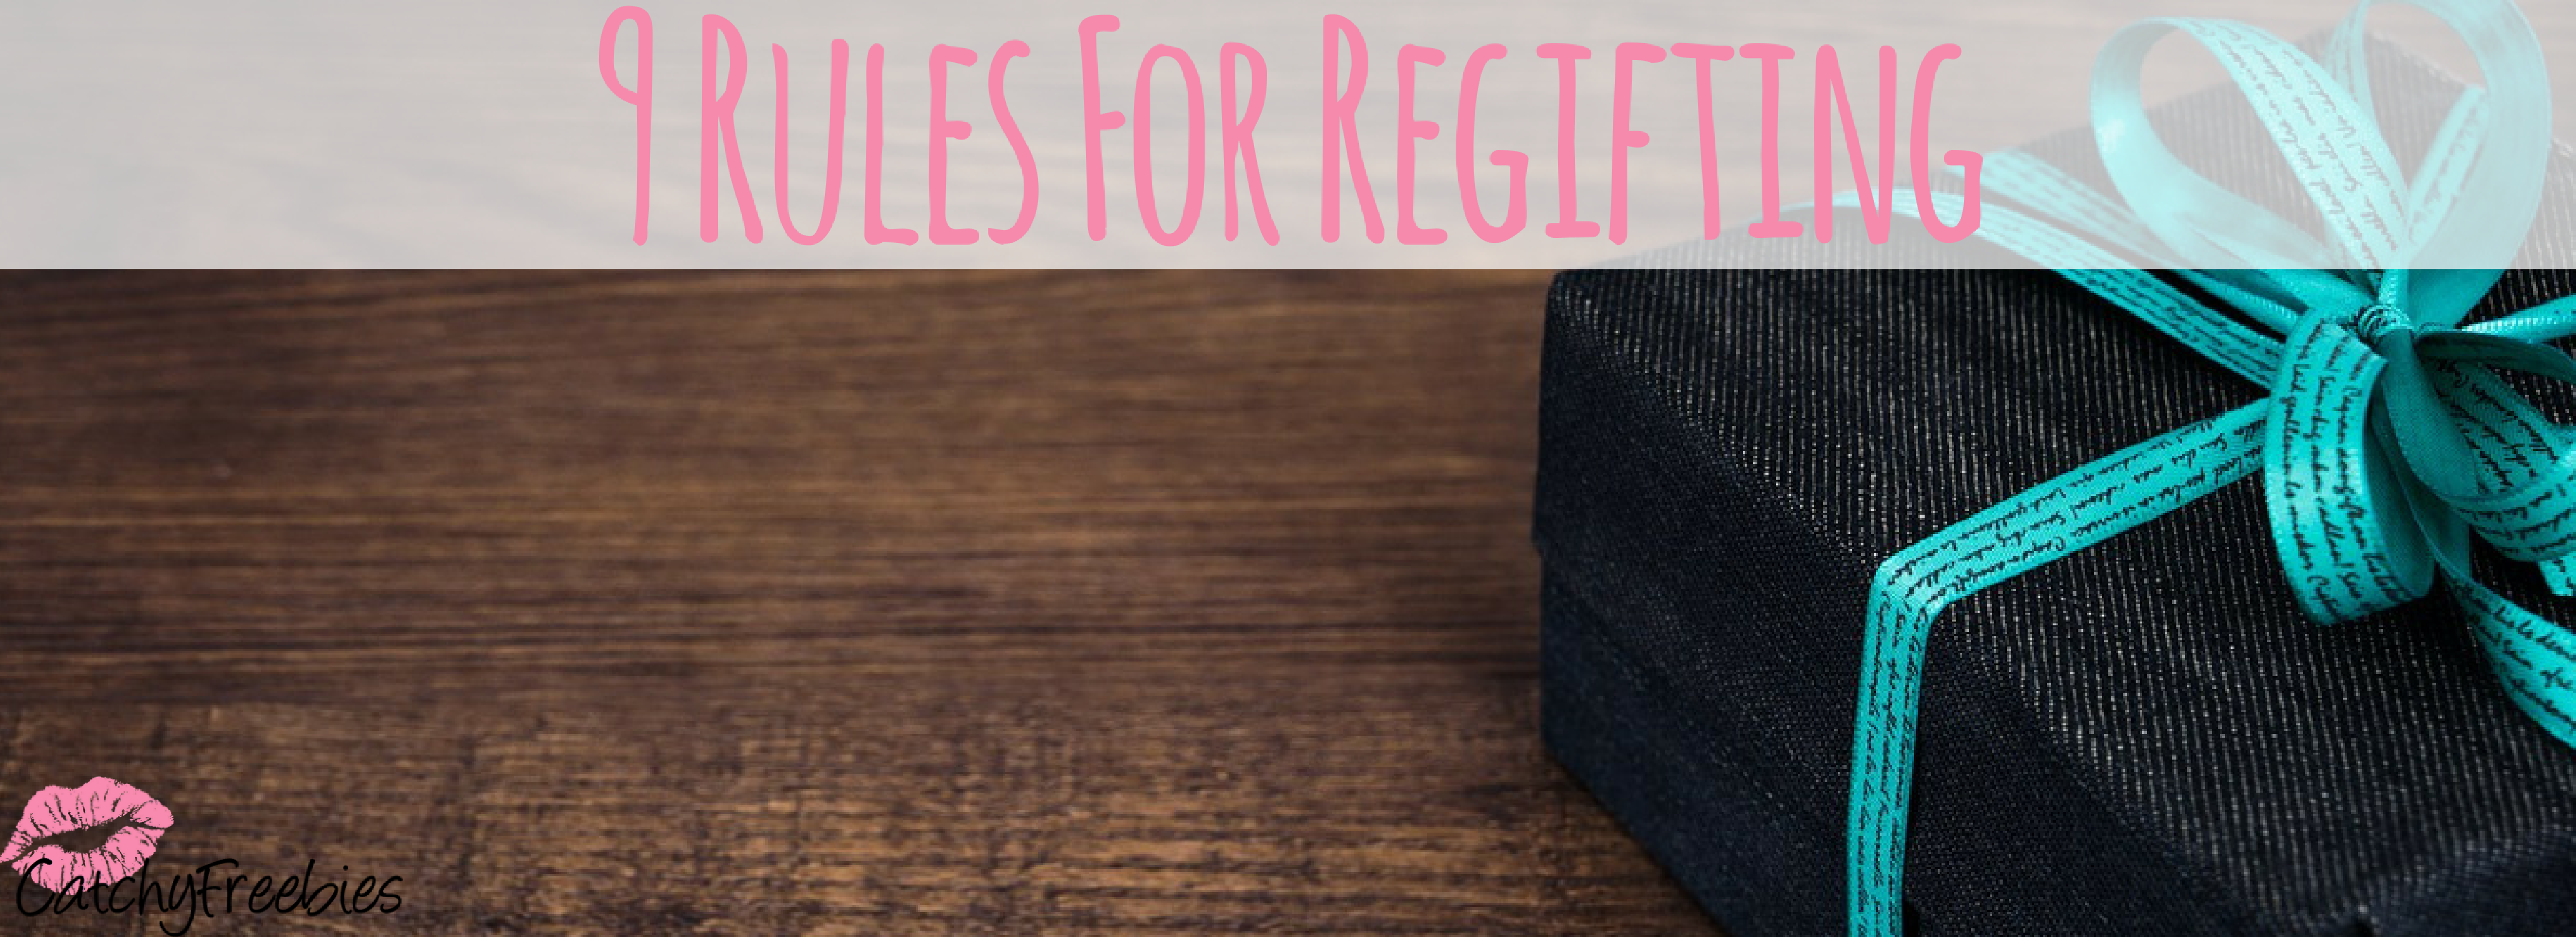 9 Rules For Regifting